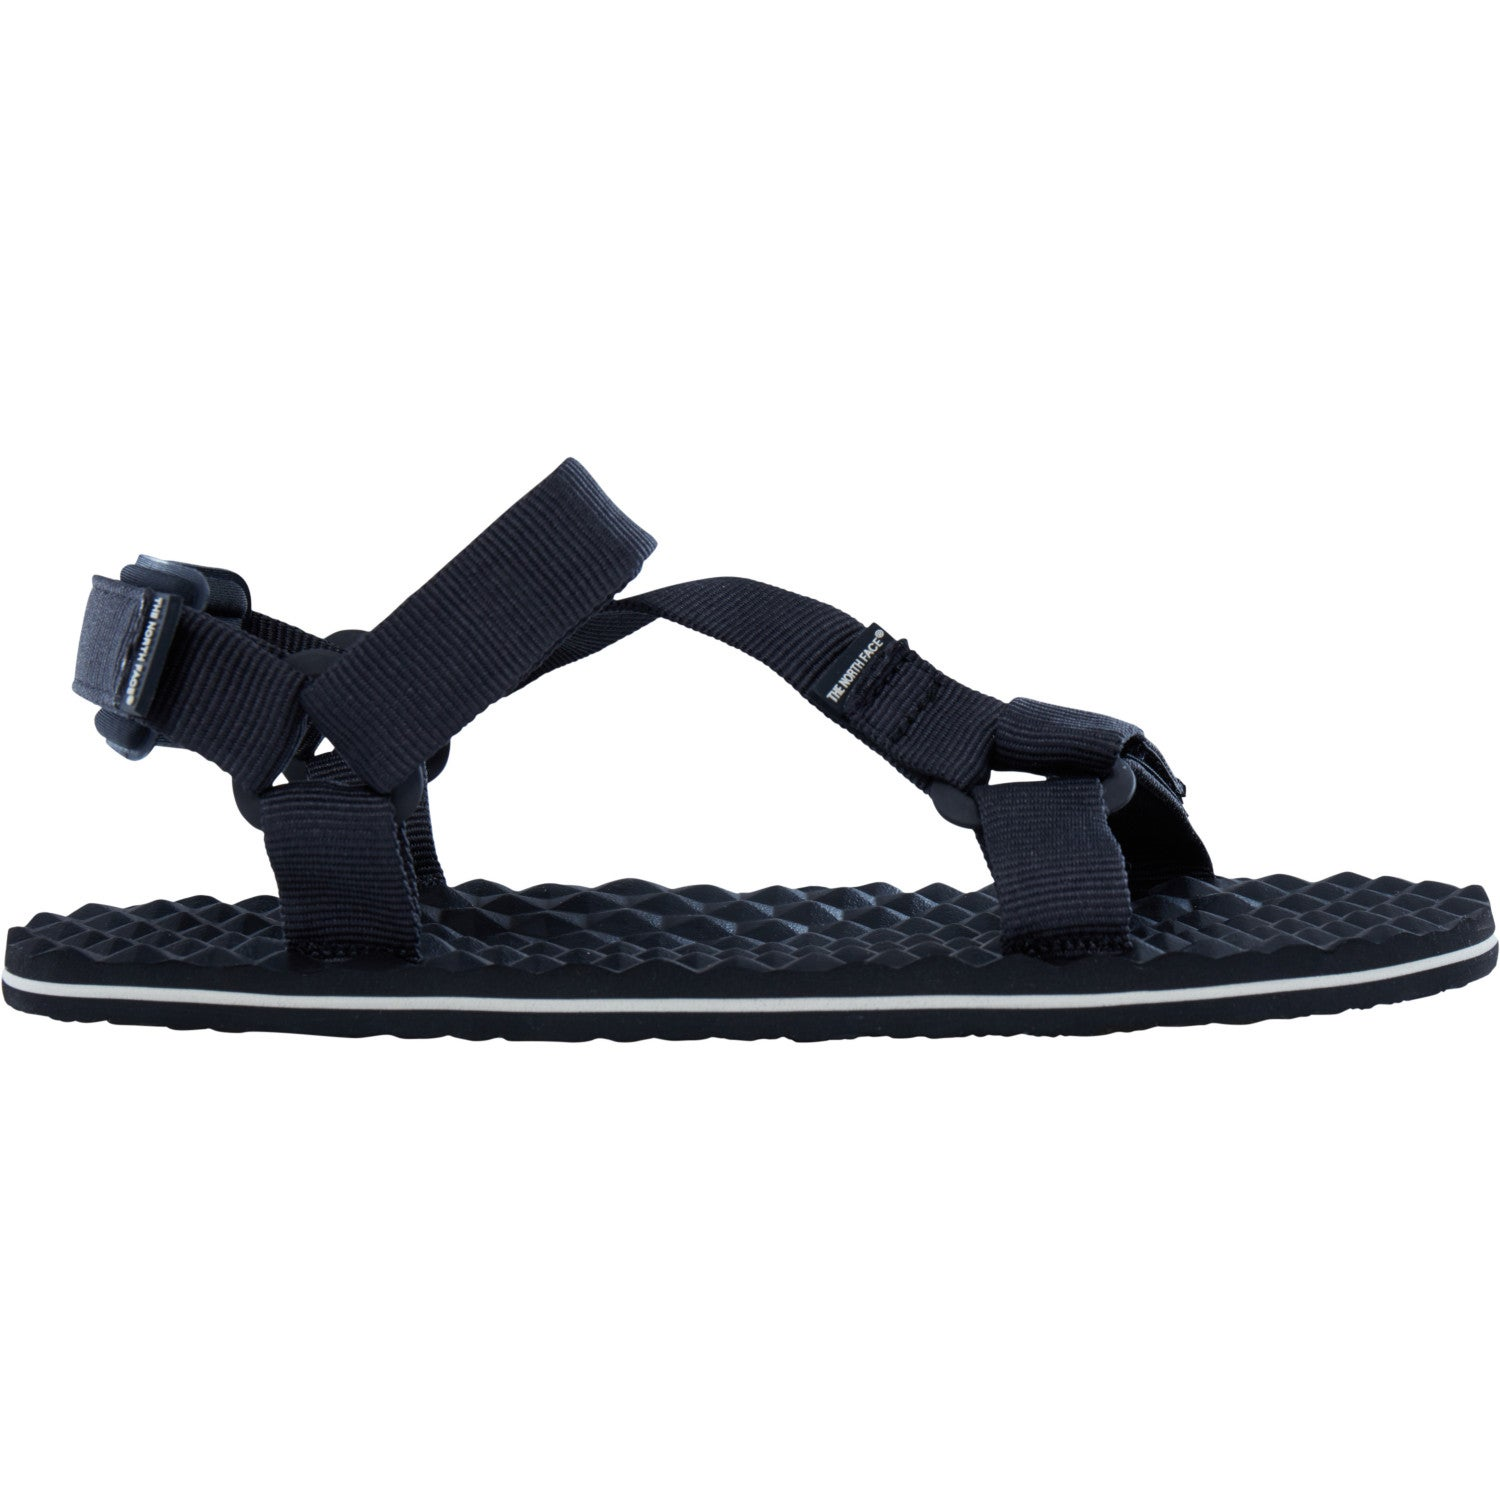 25393caca Details about The North Face Base Camp Switchback Womens Footwear Sandals -  Tnf Black Vintage